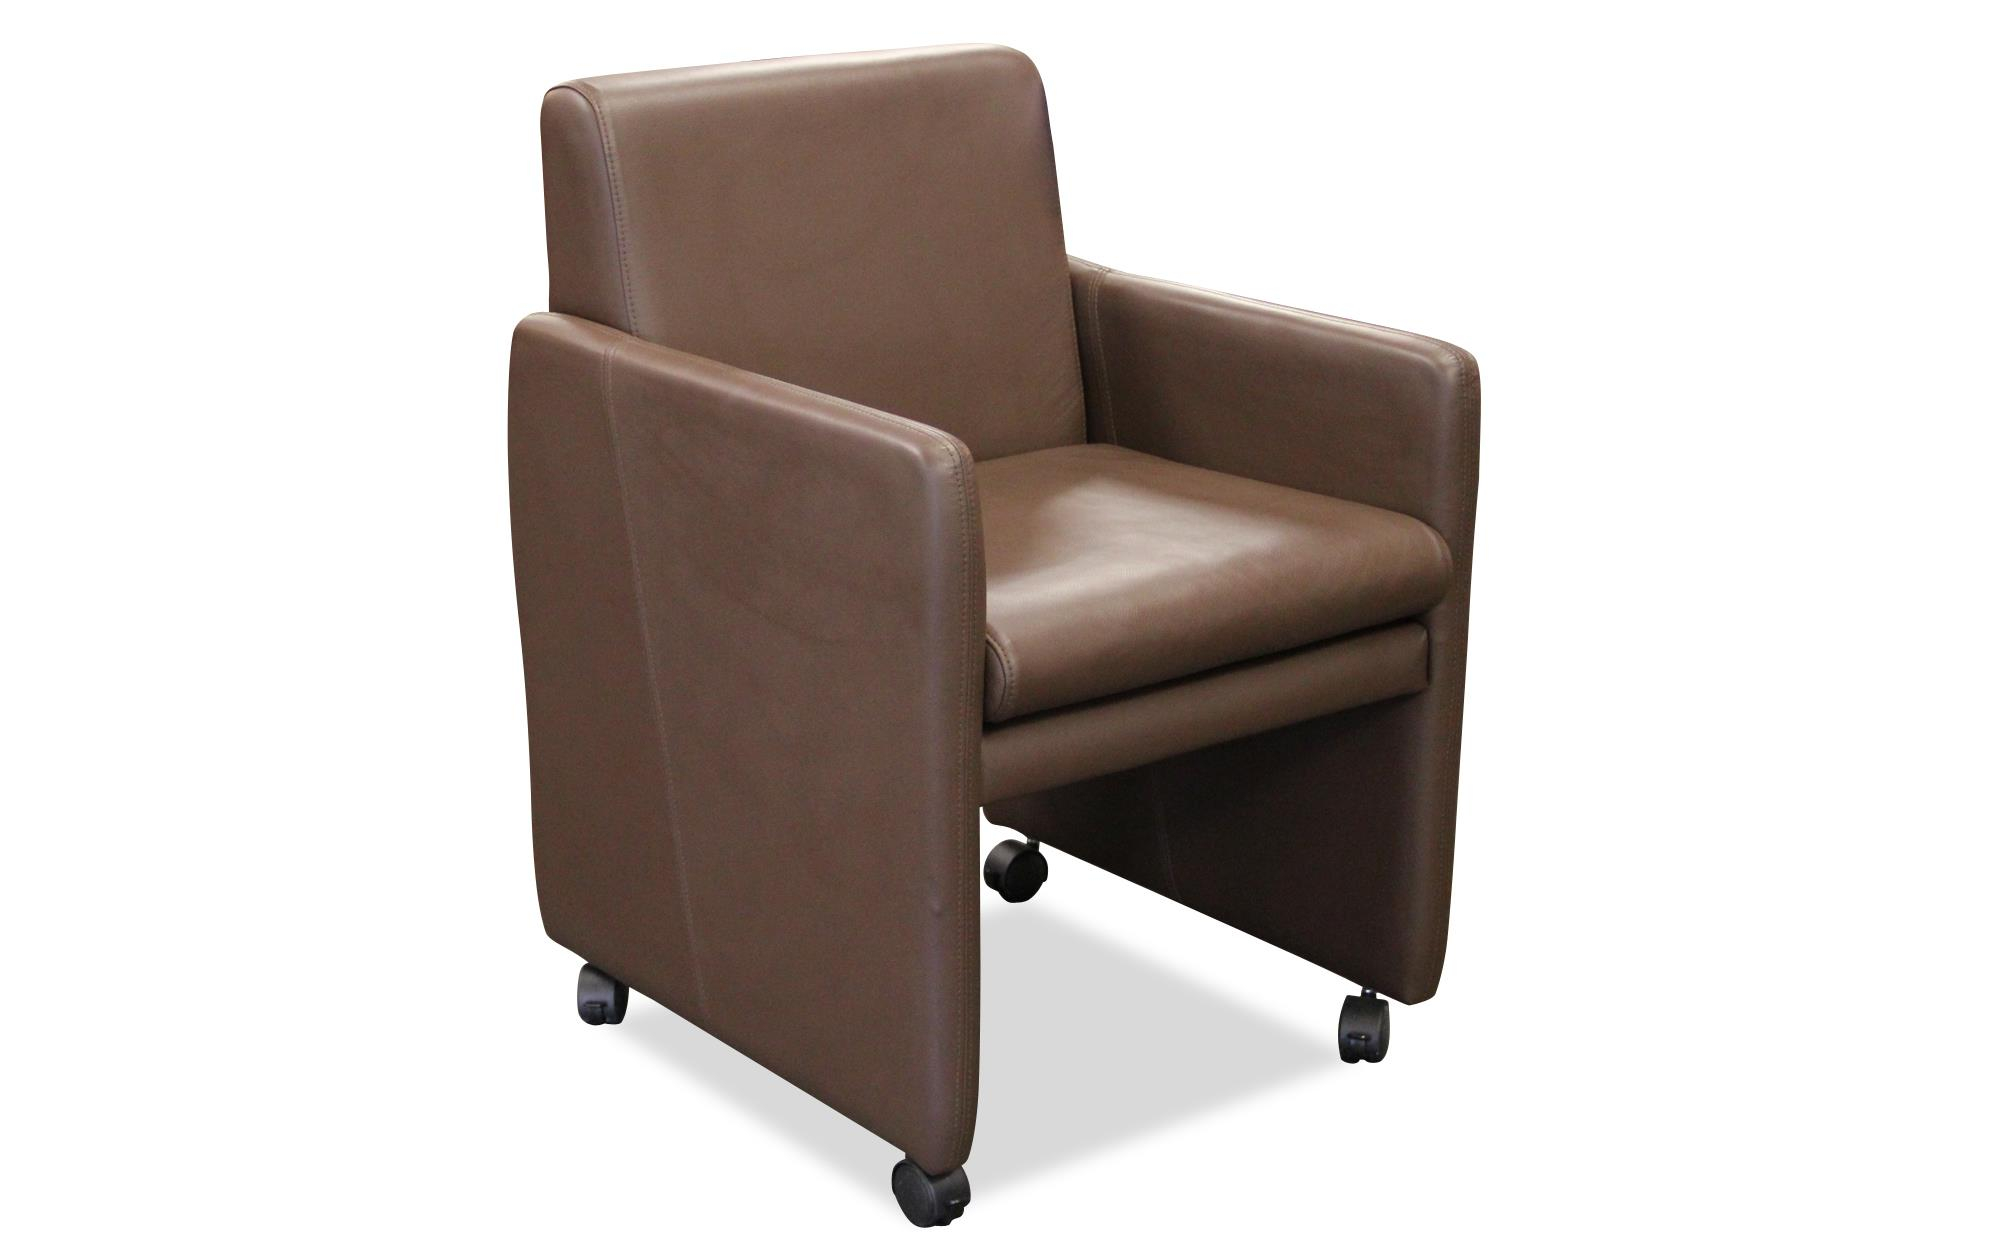 Loungesessel Esszimmer Loungesessel Tequila Braun Stuhle Fur